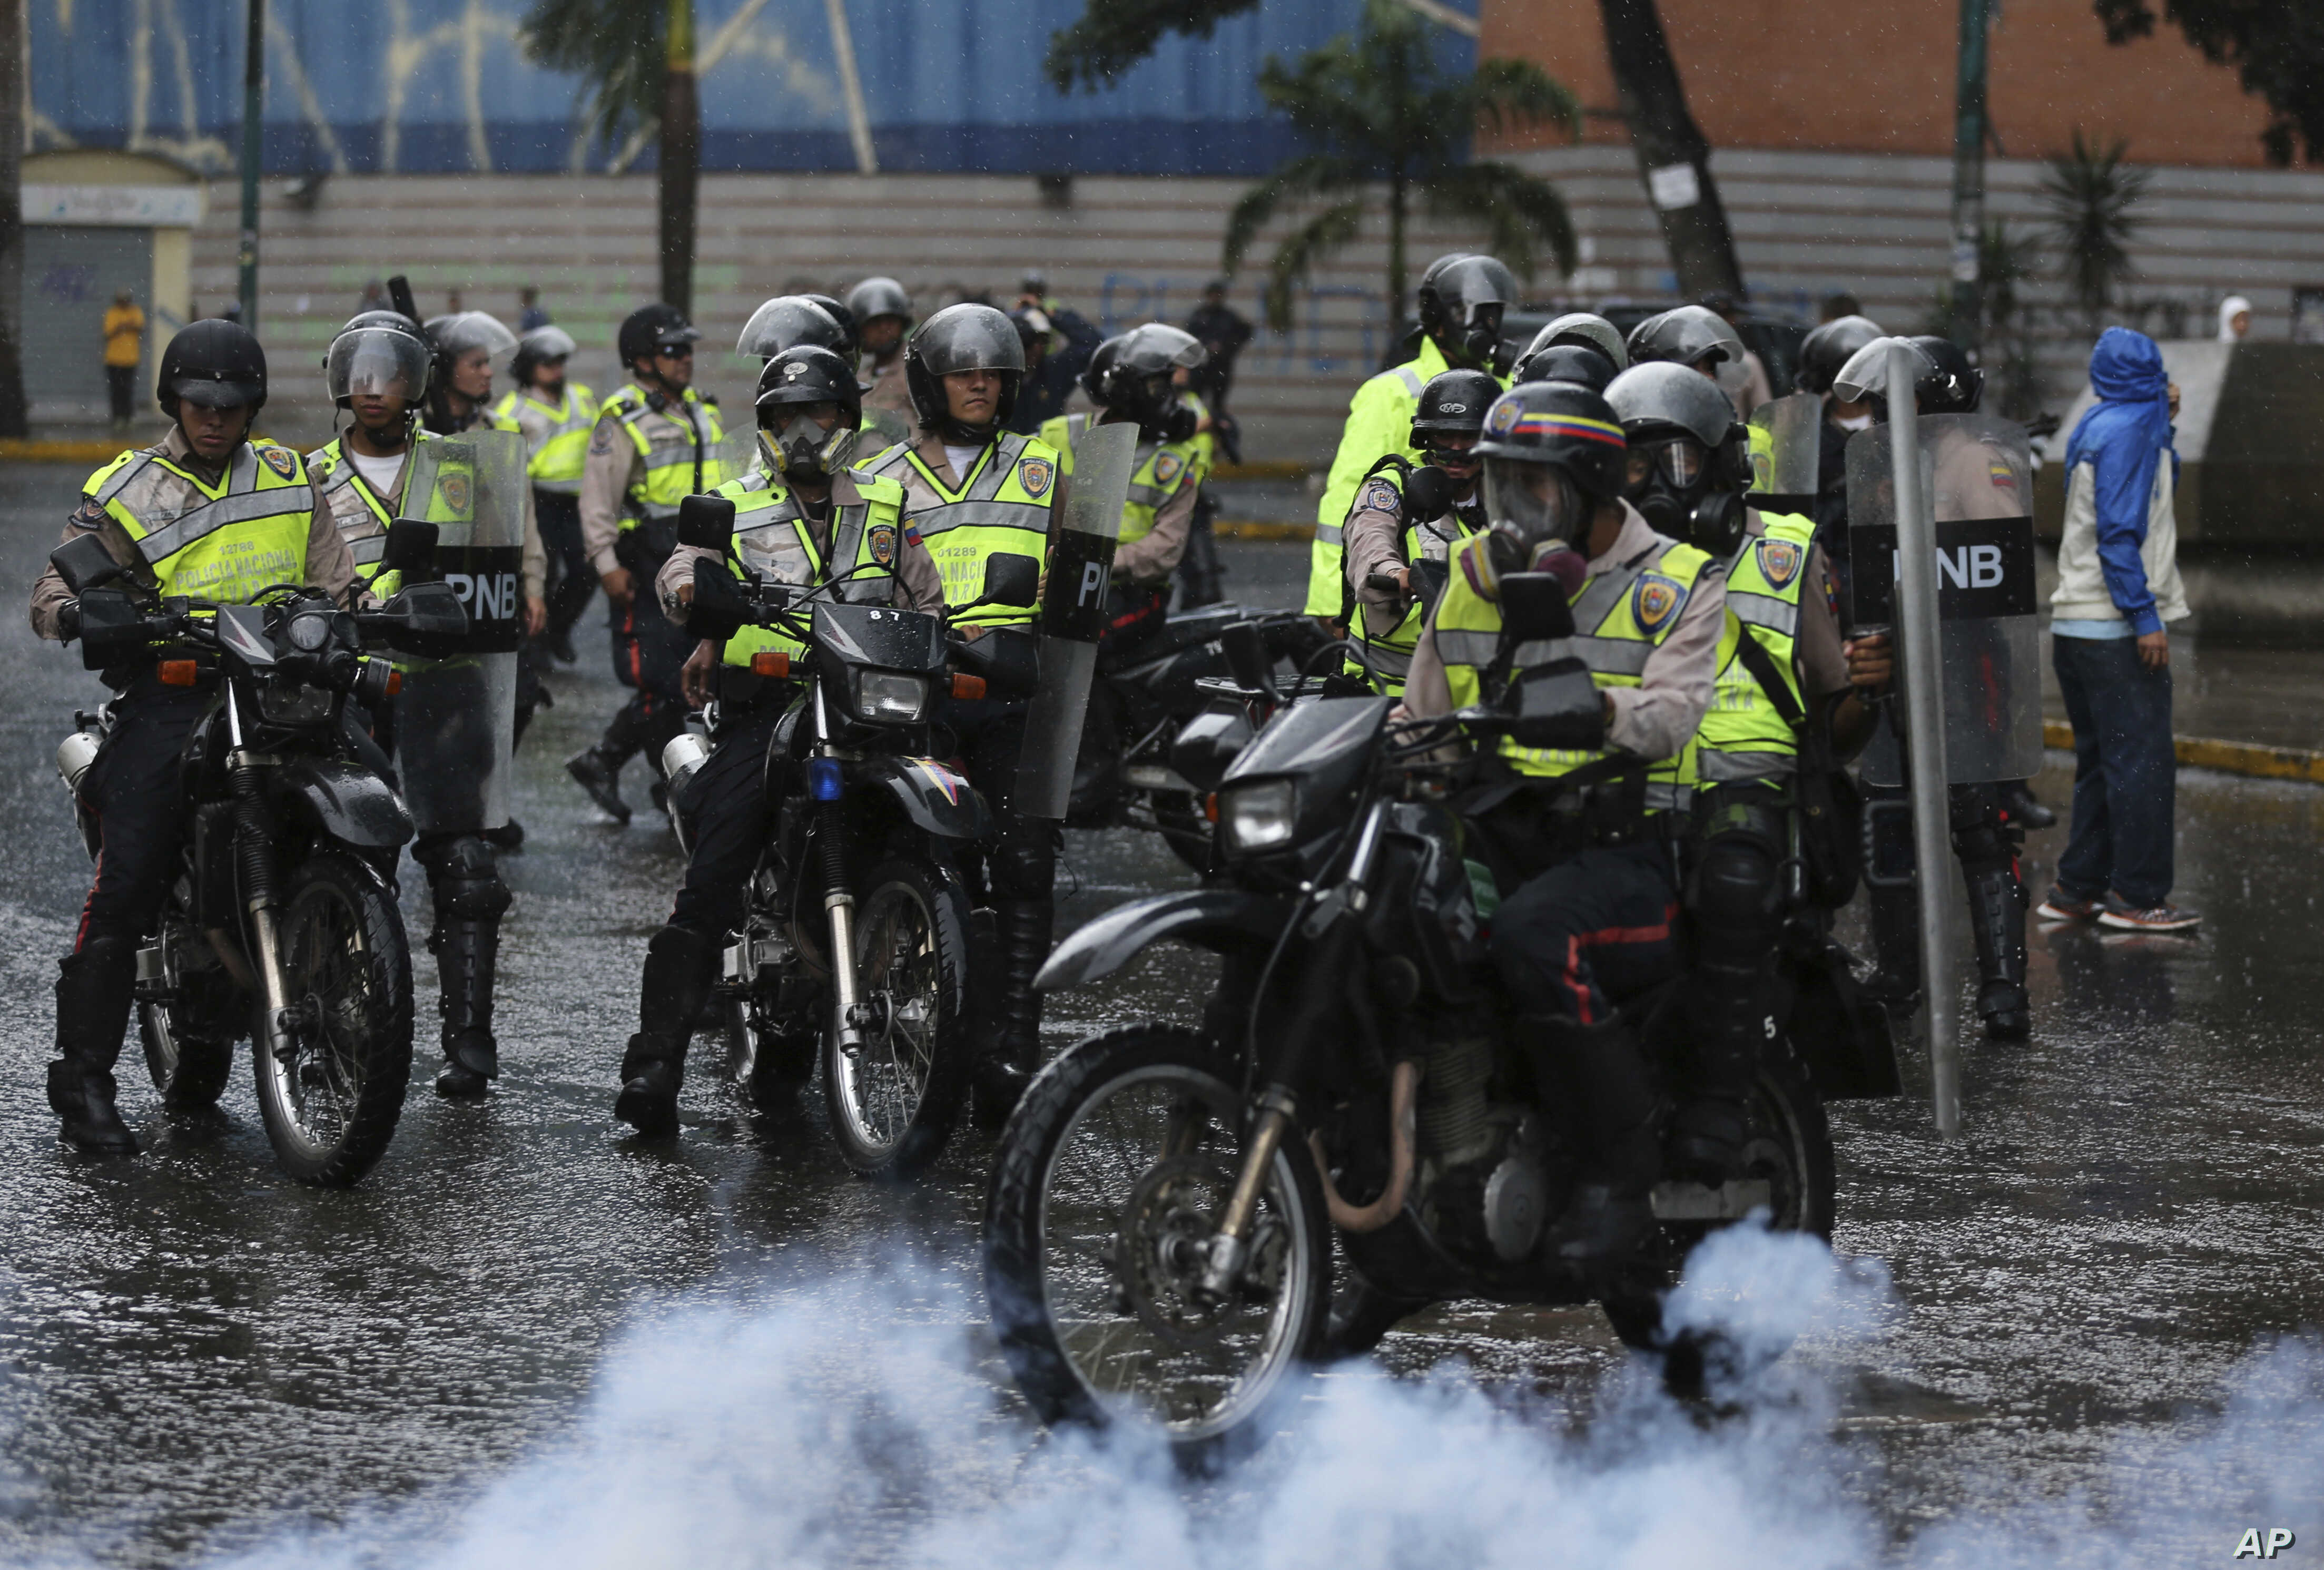 Police ride in to clear a protest in Caracas, Venezuela, June 28, 2017.